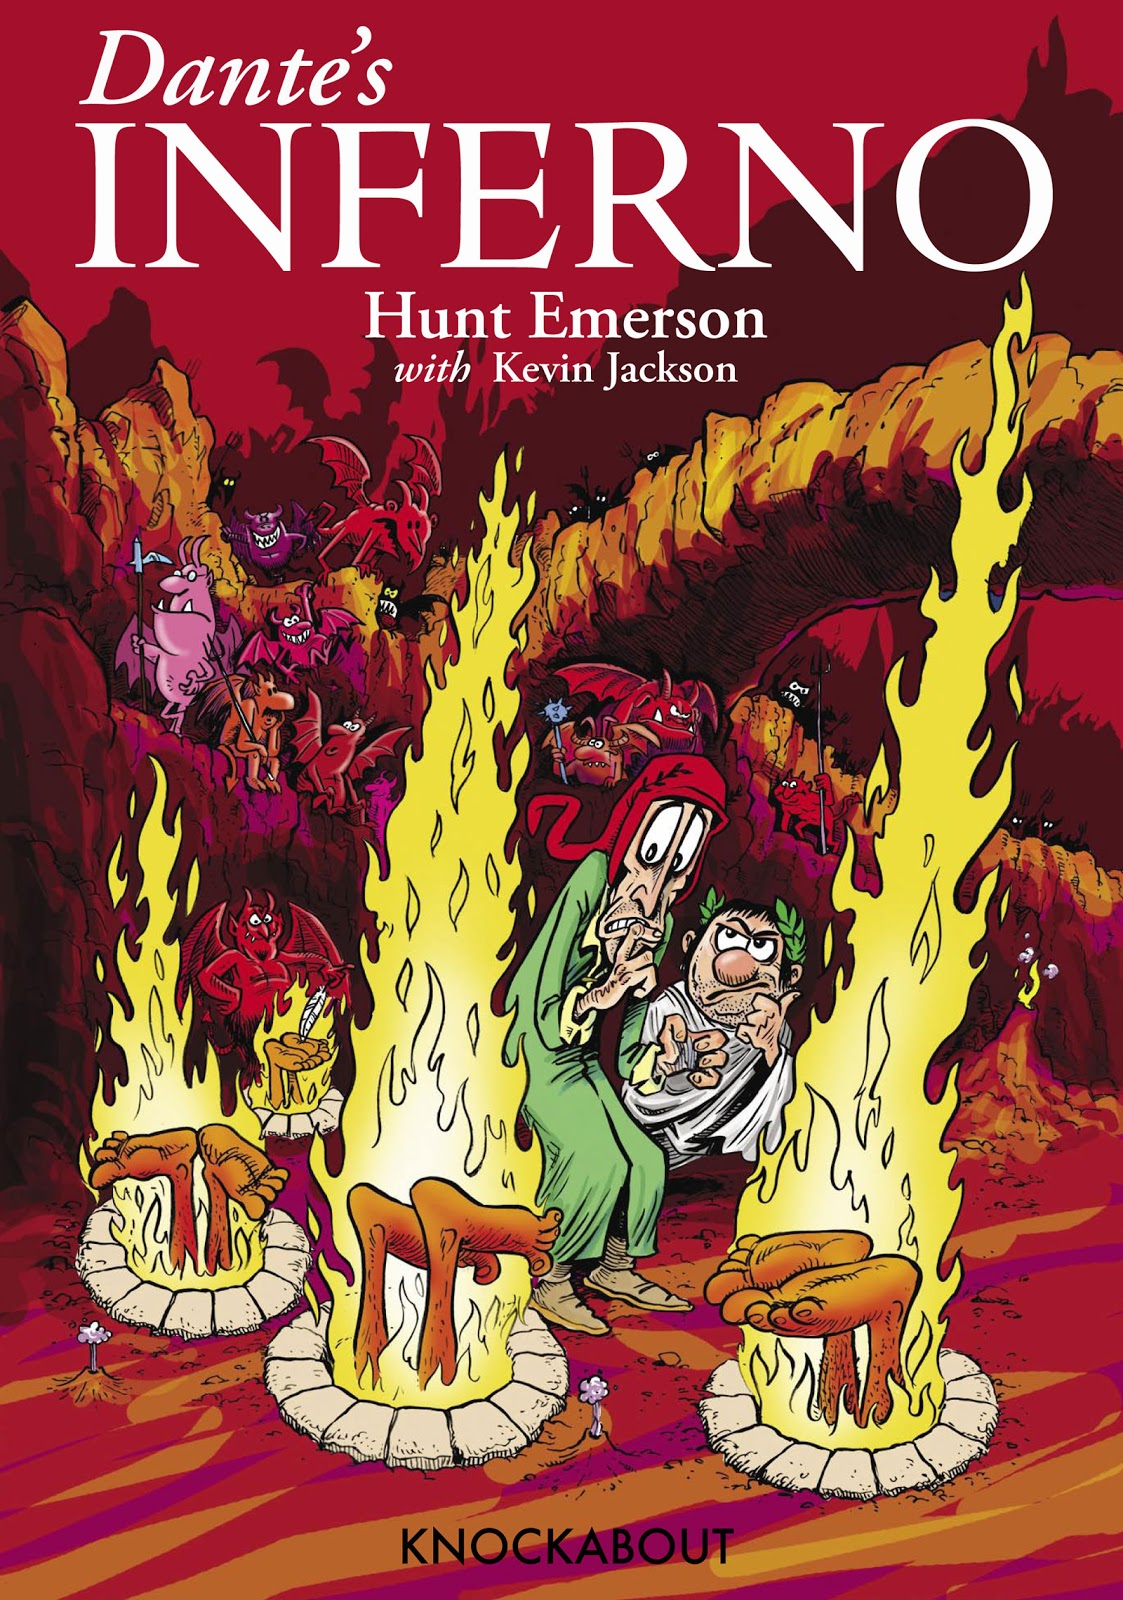 Dante's Inferno, adapted by Hunt Emerson